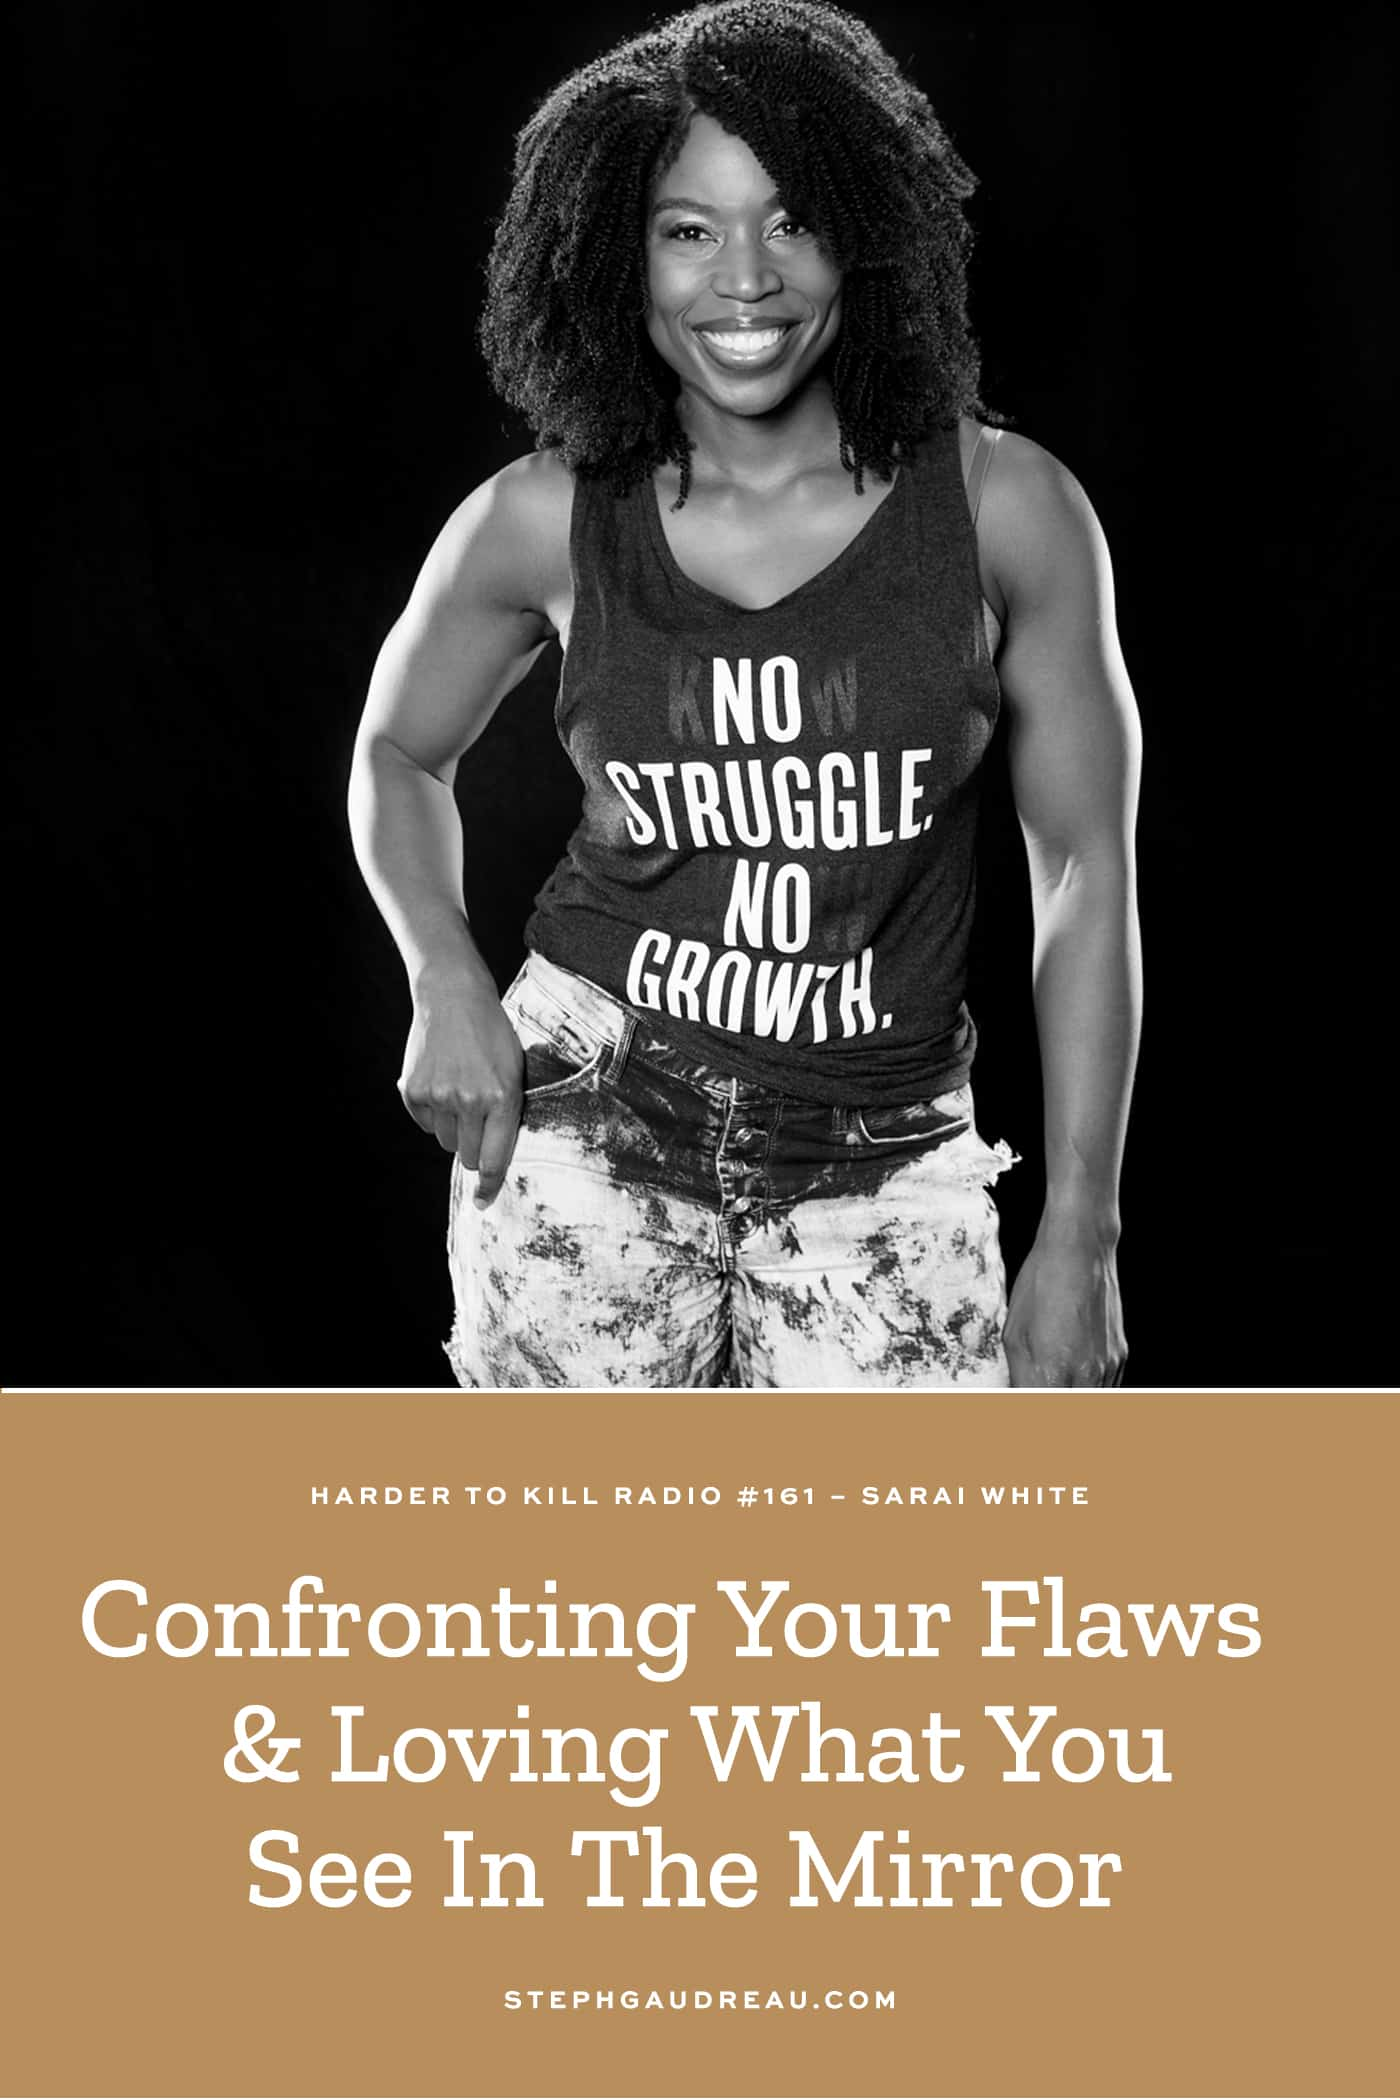 Harder To Kill Radio 161 Confronting Your Flaws & Loving What You See In The Mirror w/ Sarai White